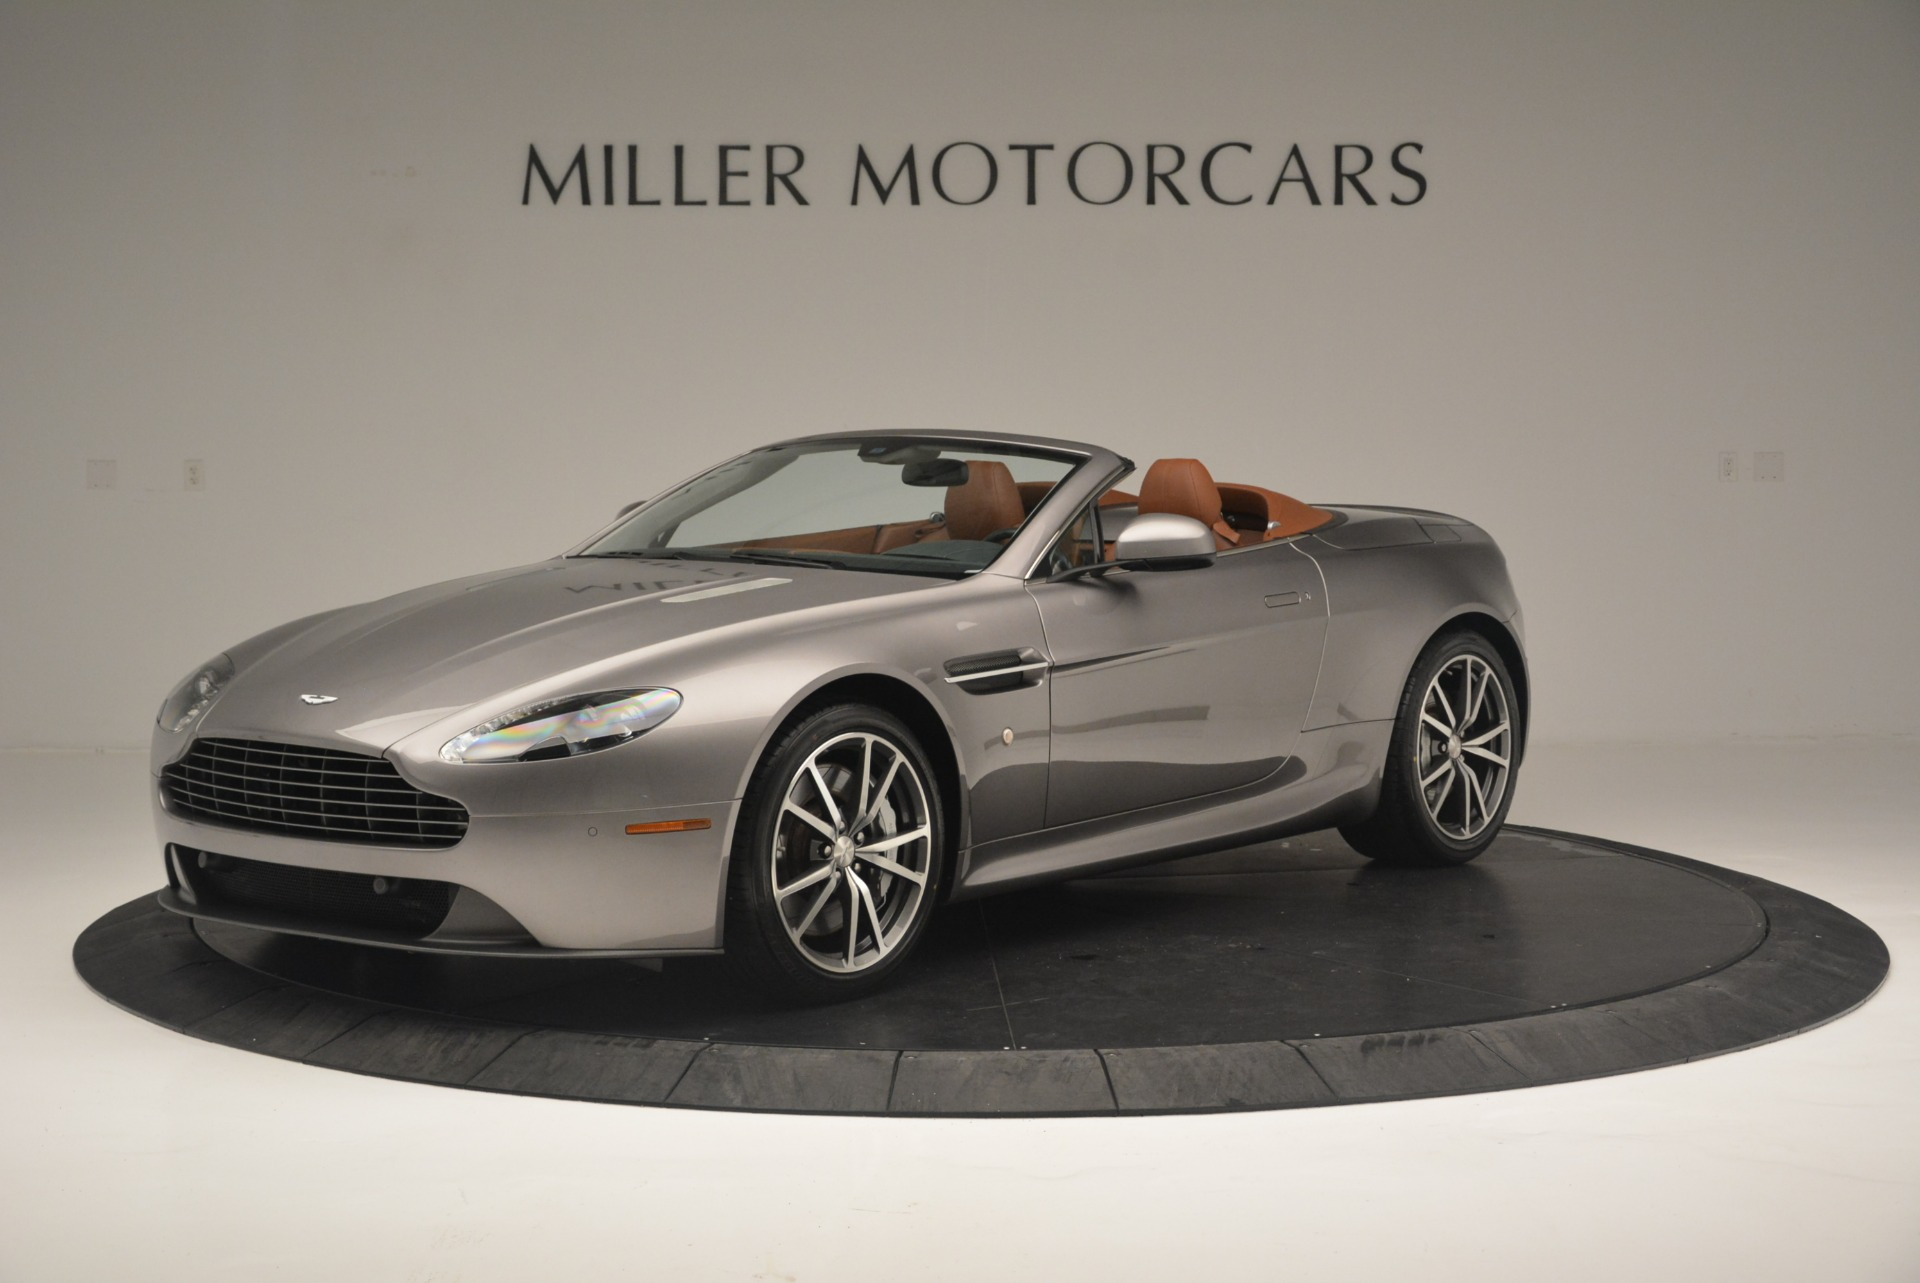 Used 2015 Aston Martin V8 Vantage Roadster for sale Sold at Rolls-Royce Motor Cars Greenwich in Greenwich CT 06830 1